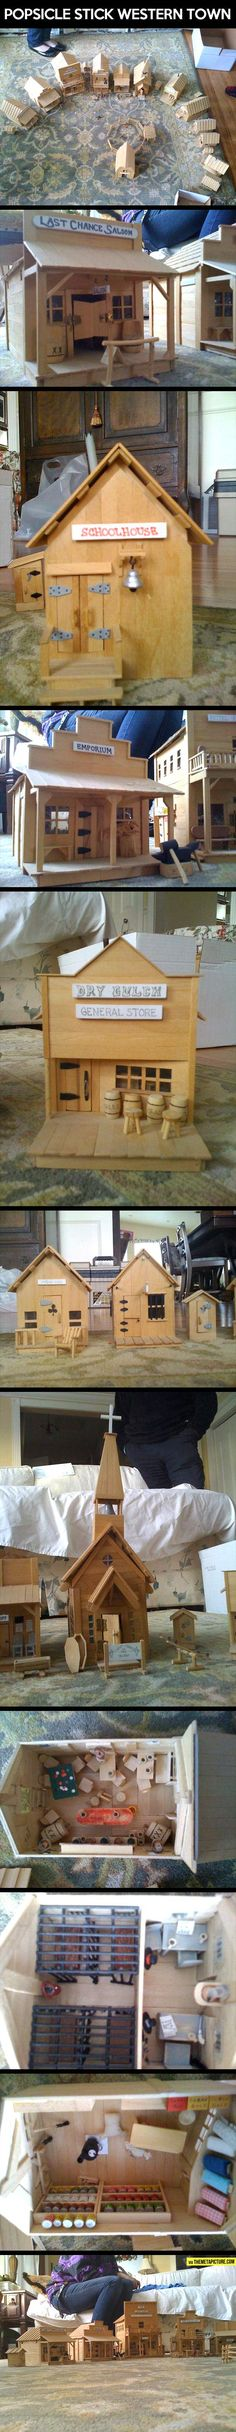 Miniature western town of Popsicle sticks. I thought it would make a great Xmas village